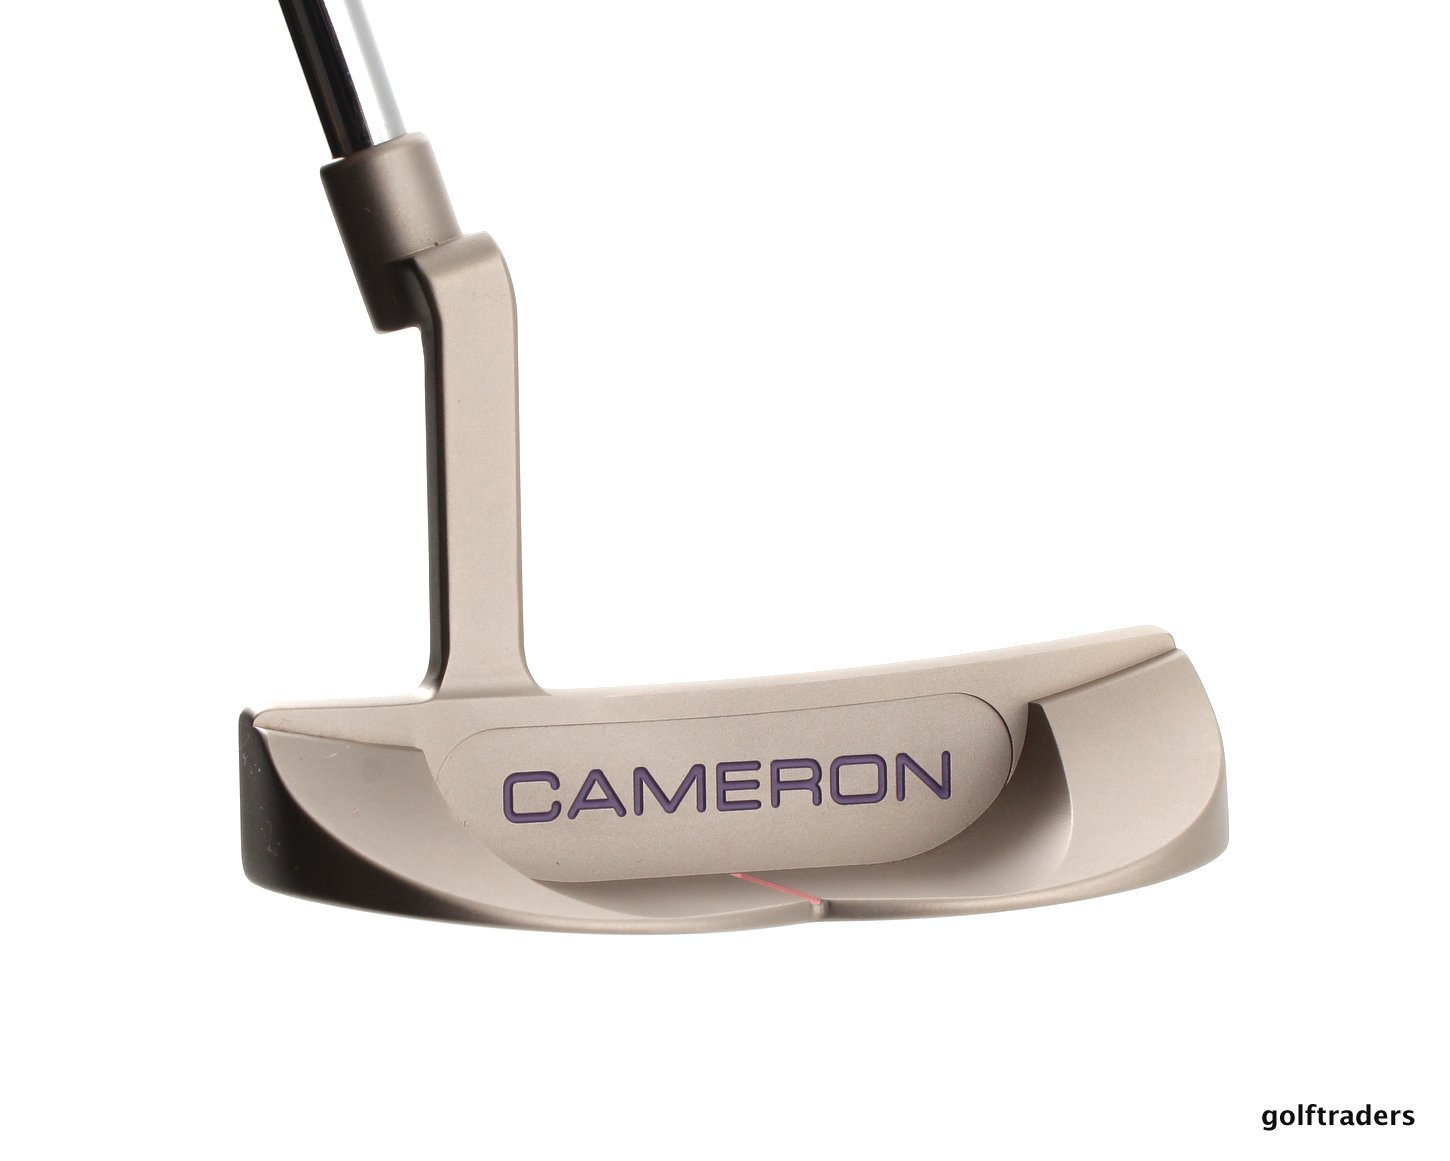 scotty cameron putter fitting guide